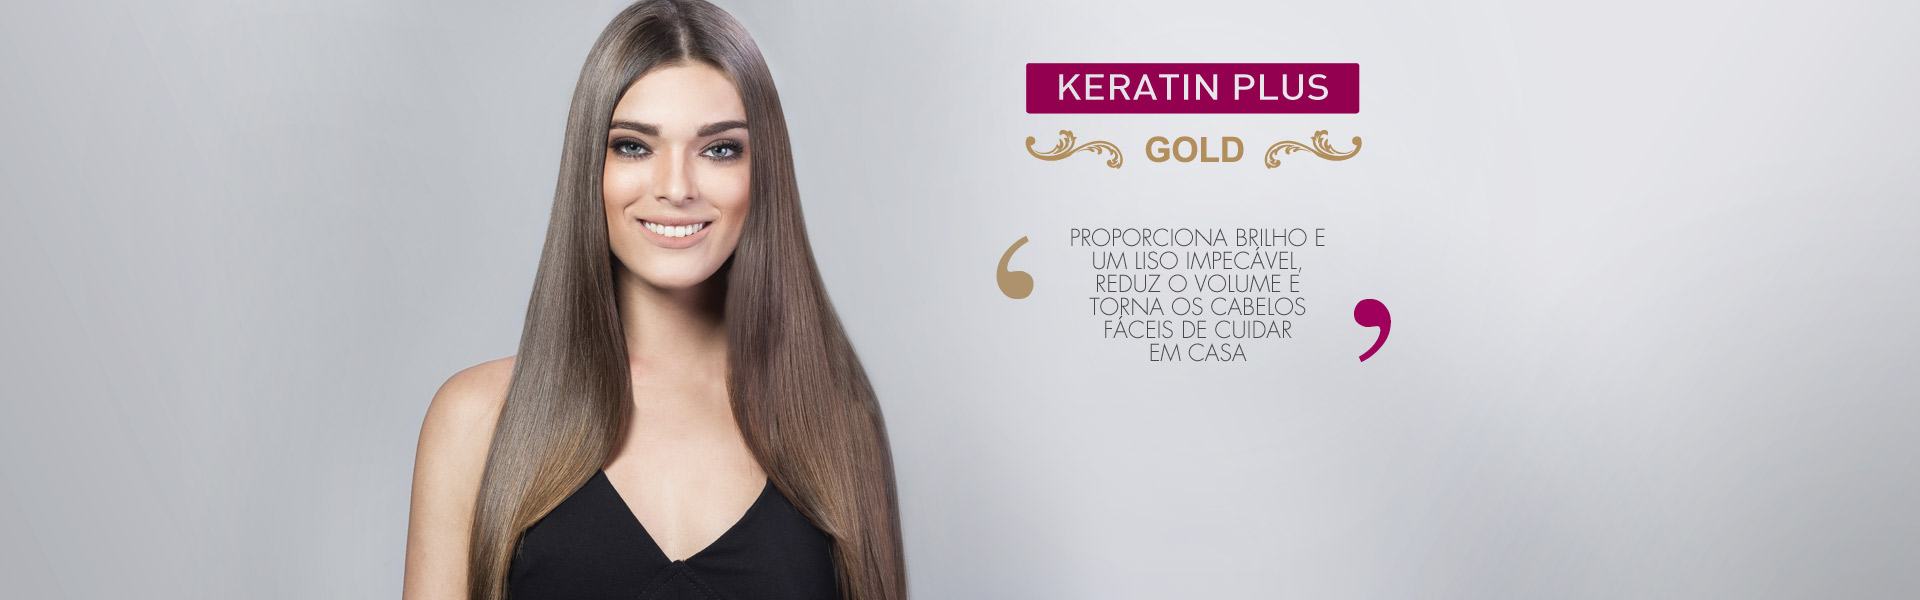 keratin plus gold